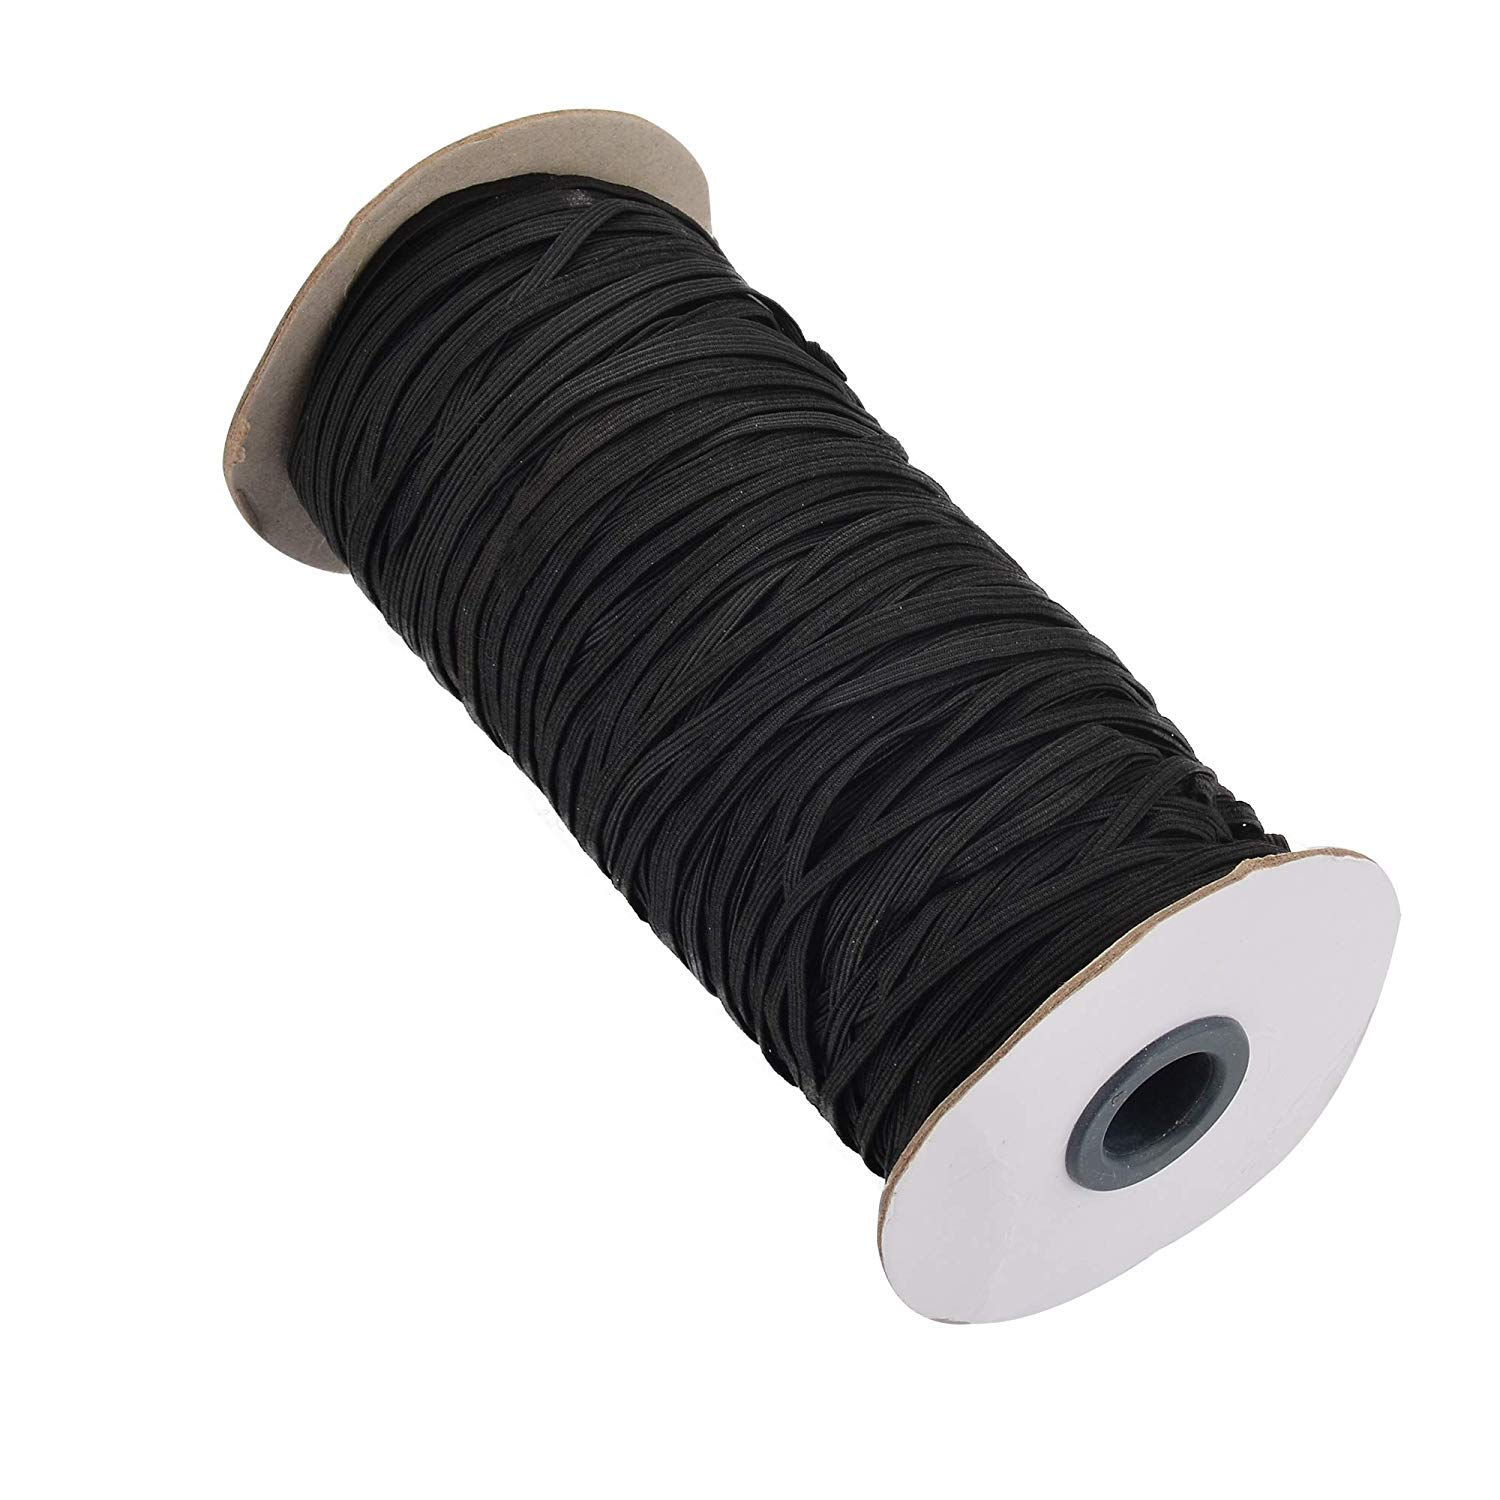 120 Yards 1/8'' Black Color Braided Flat Elastic Band/Elastic Cord Bungee/Durable Stretch Knit Elastic Spool Sew Tool,4Rolls by goodxy